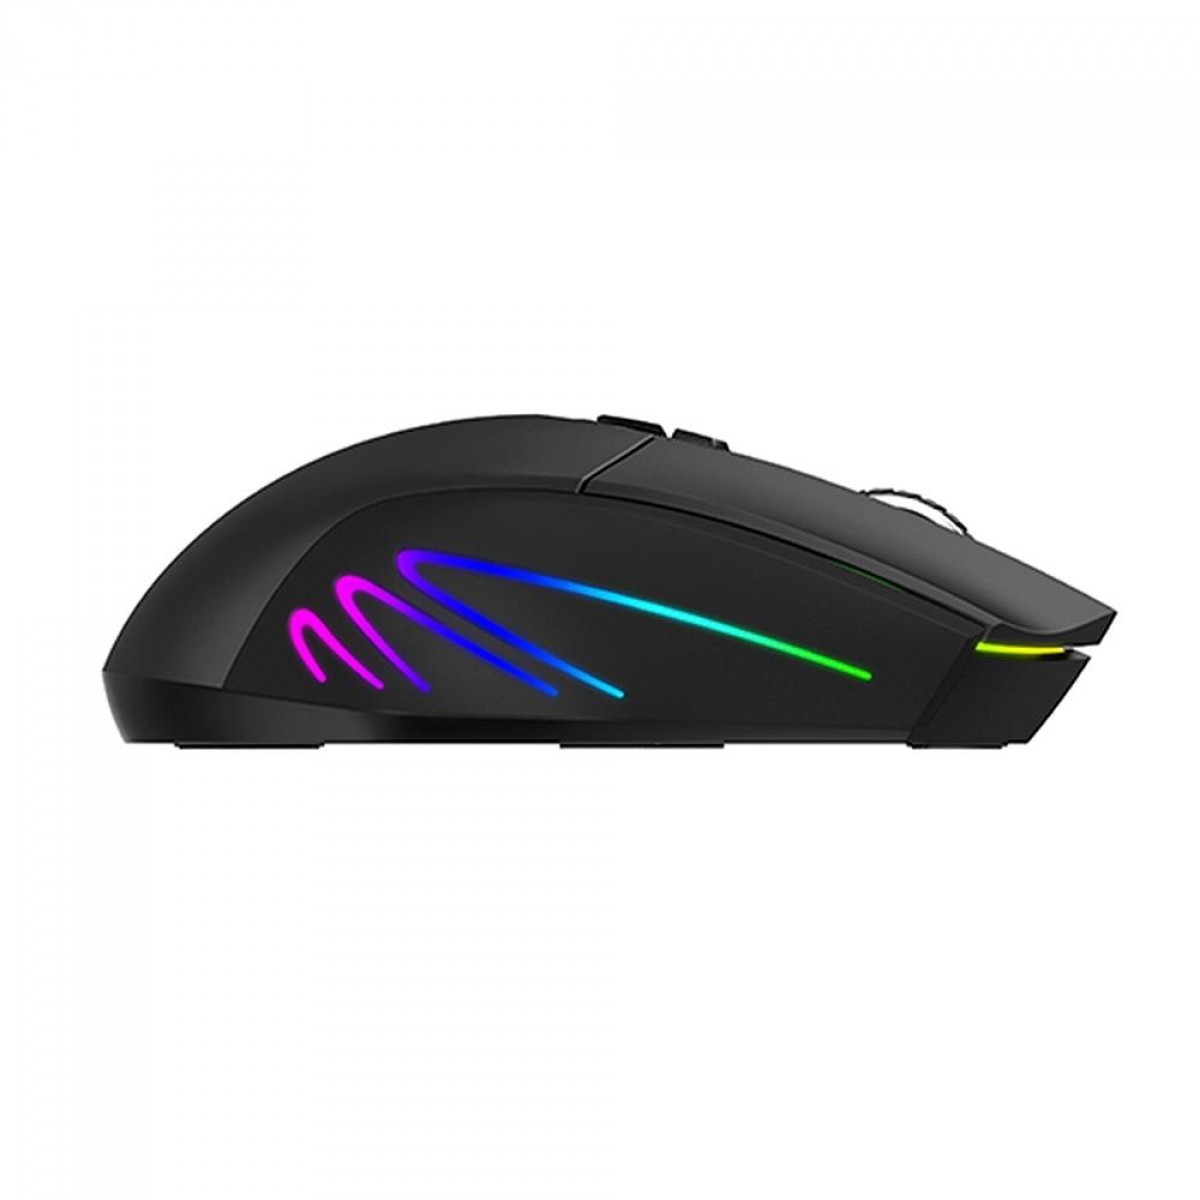 Mouse Wireless Gamer Havit MS1021W, 7000 DPI, 7 Botões, RGB, MS1021W